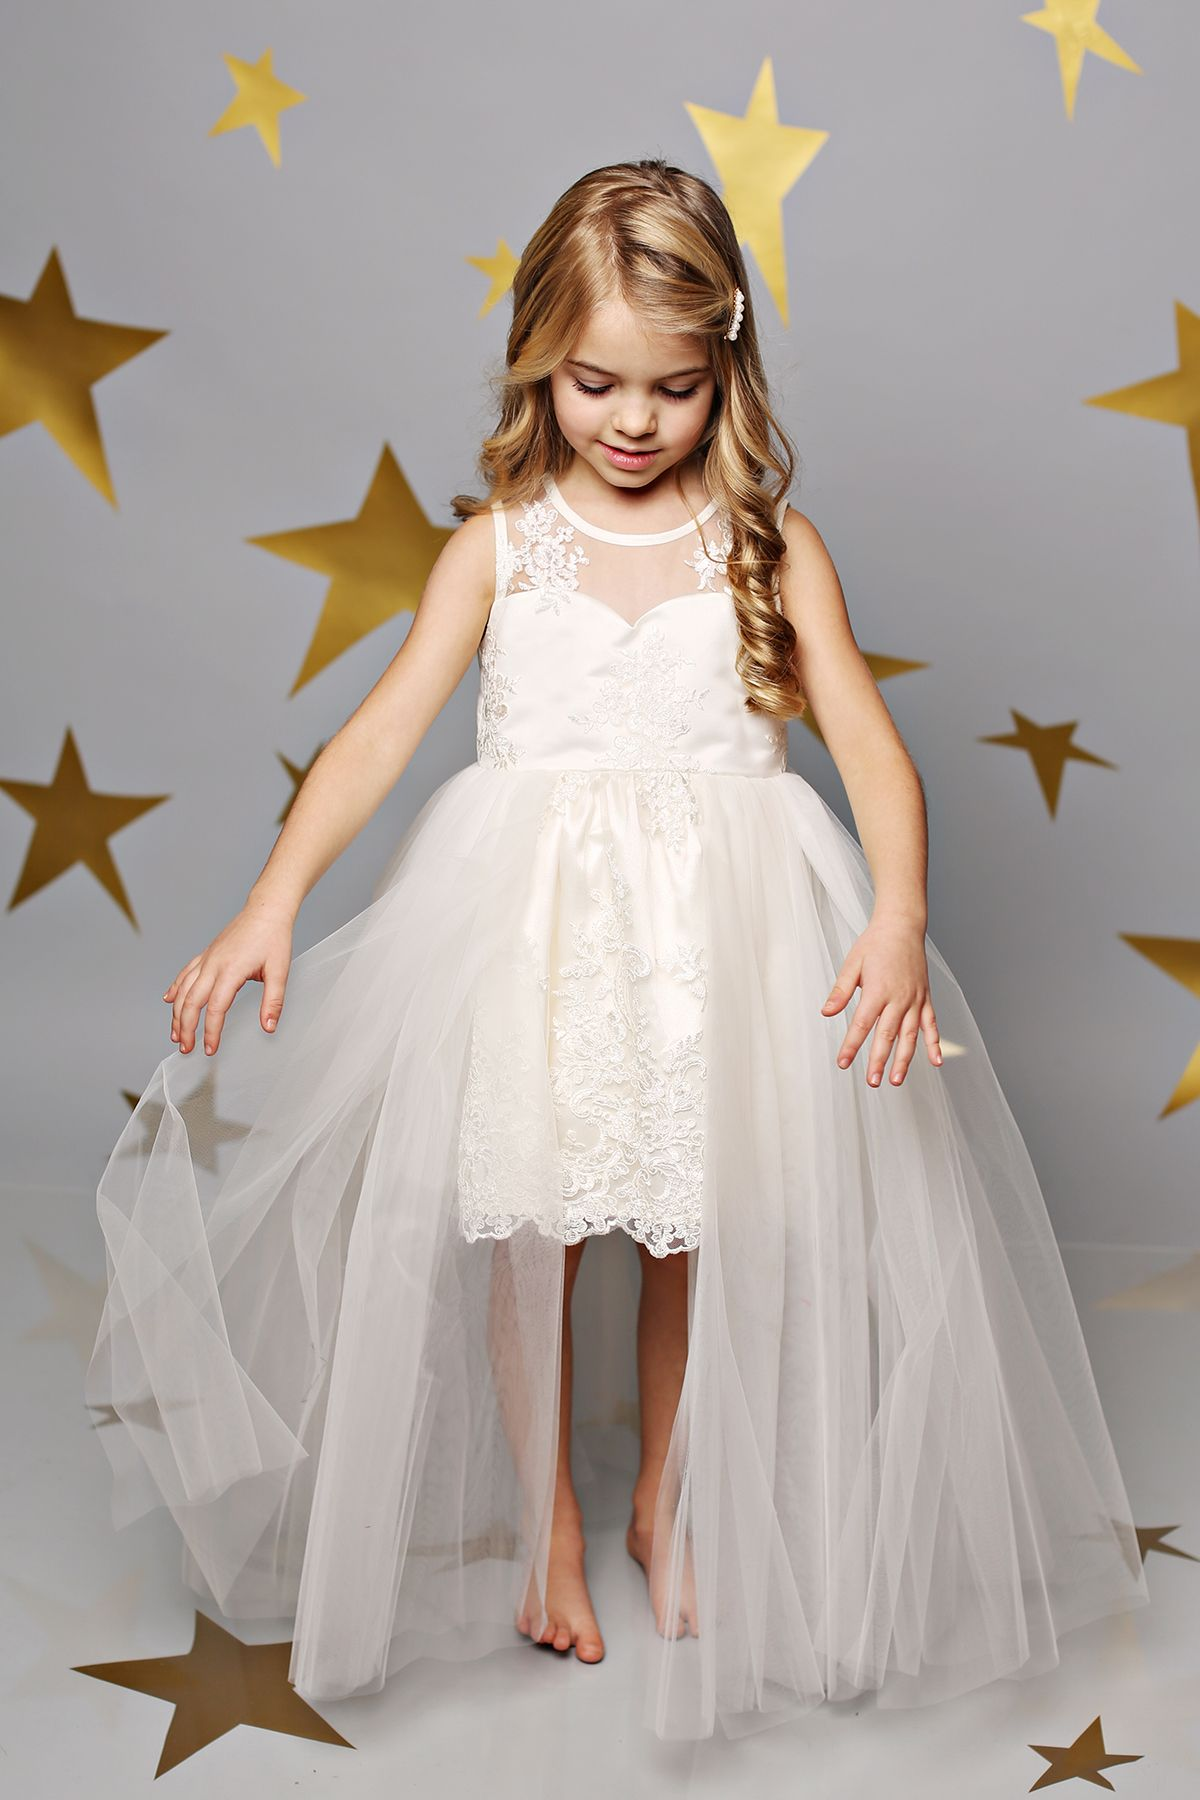 Adorable flower girl dress! | Justice Weddings: Boho Beauty ...